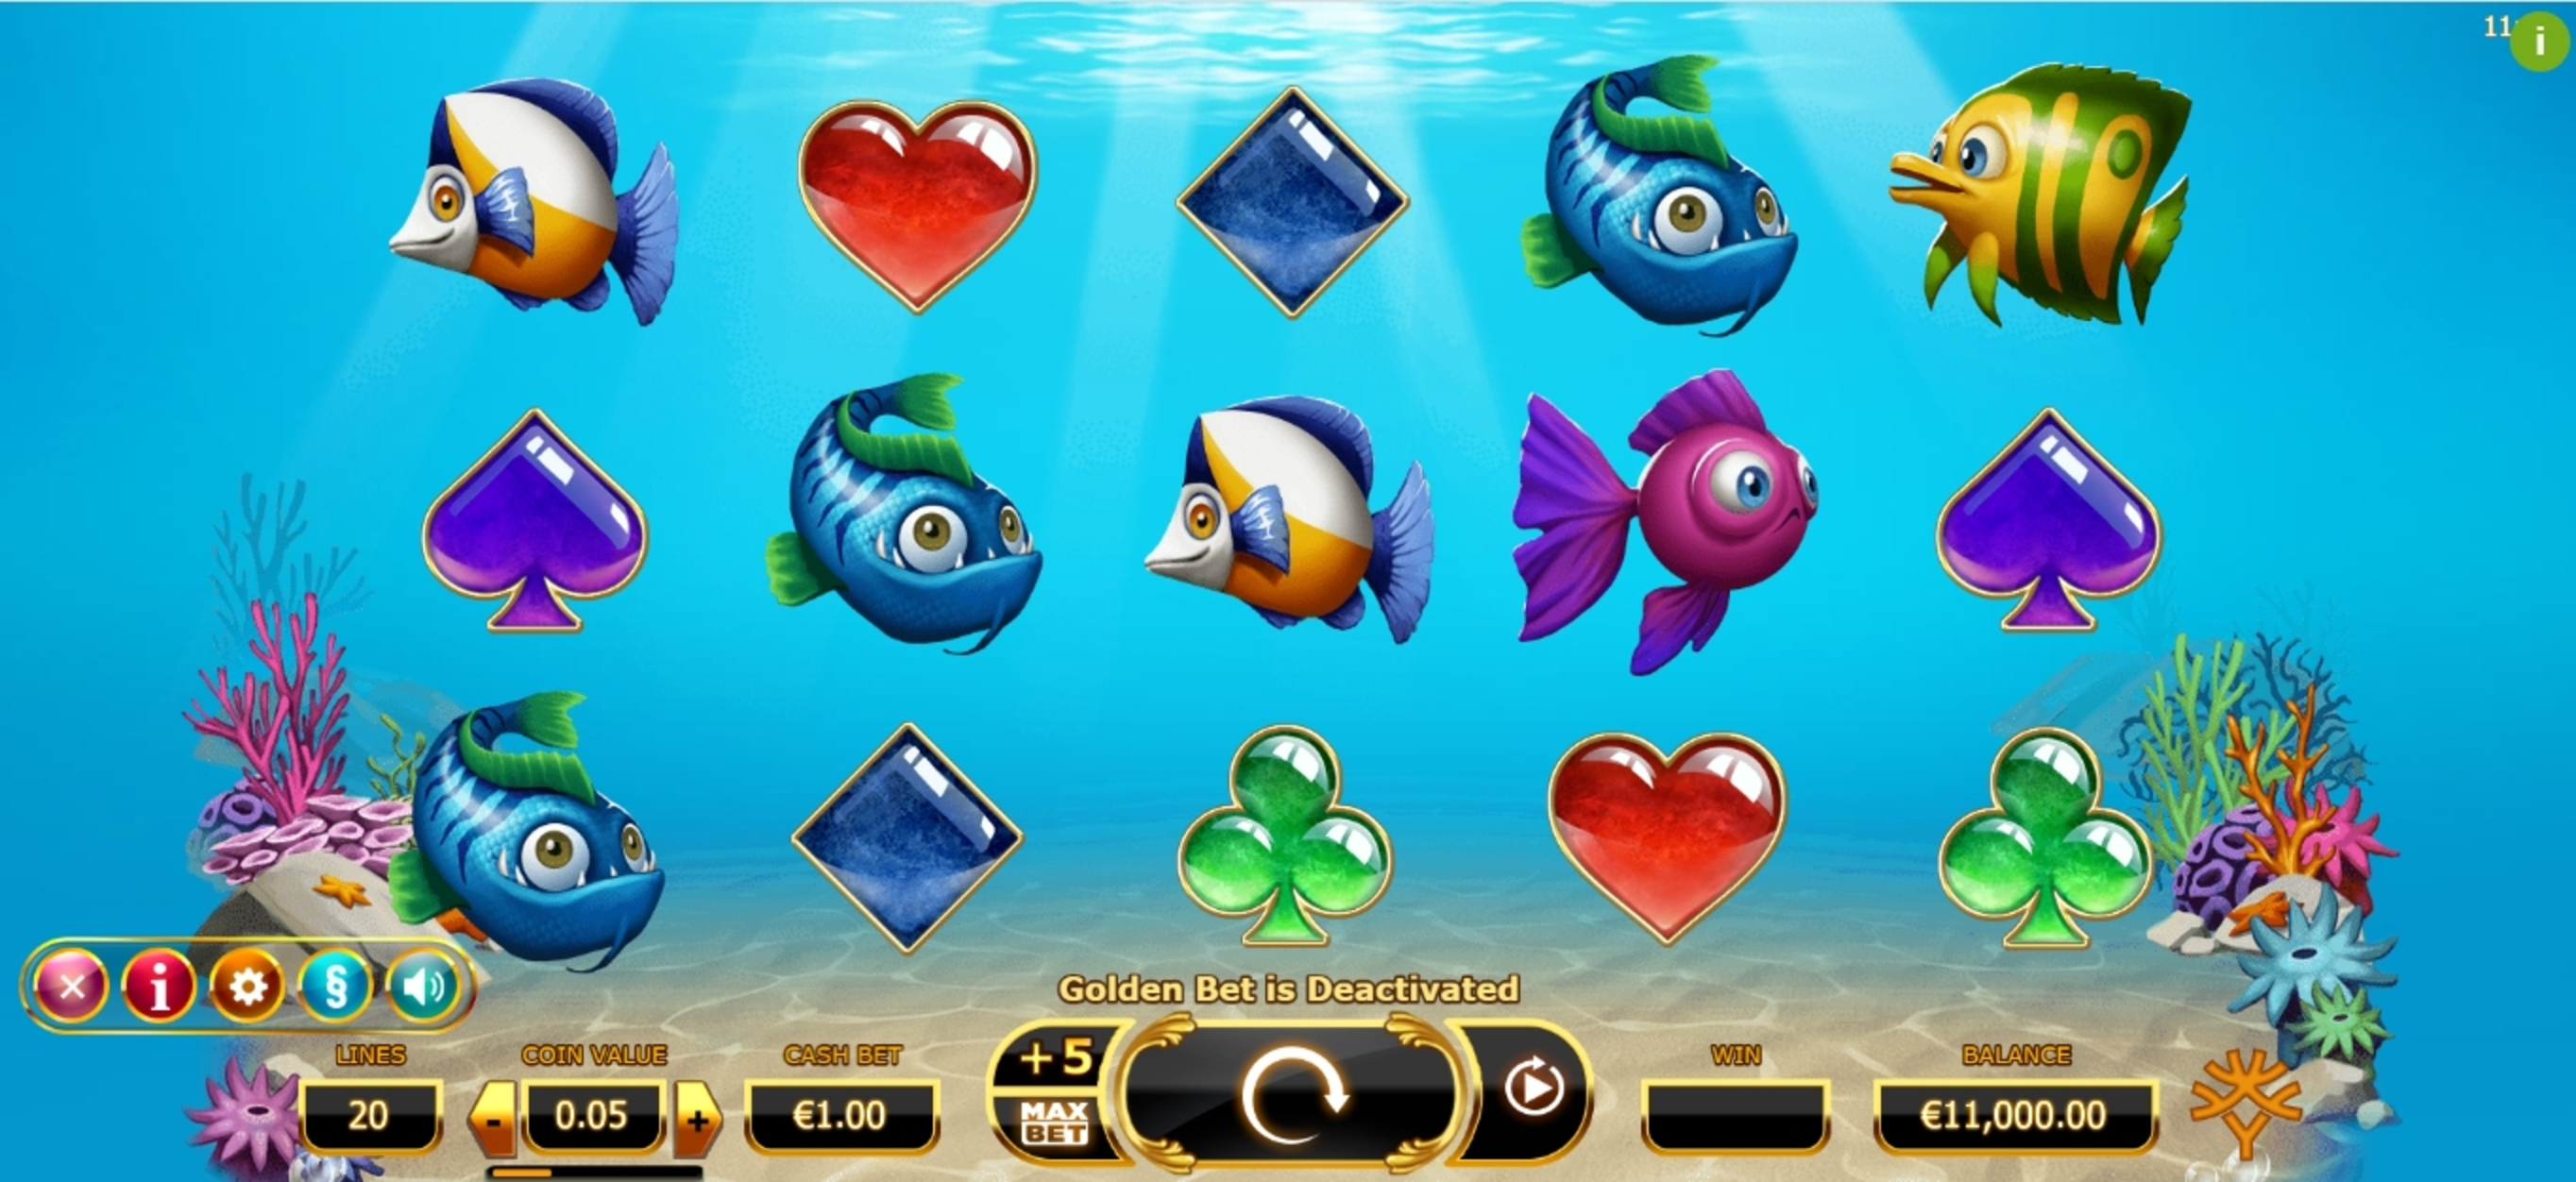 Reels in Golden Fish Tank Slot Game by Yggdrasil